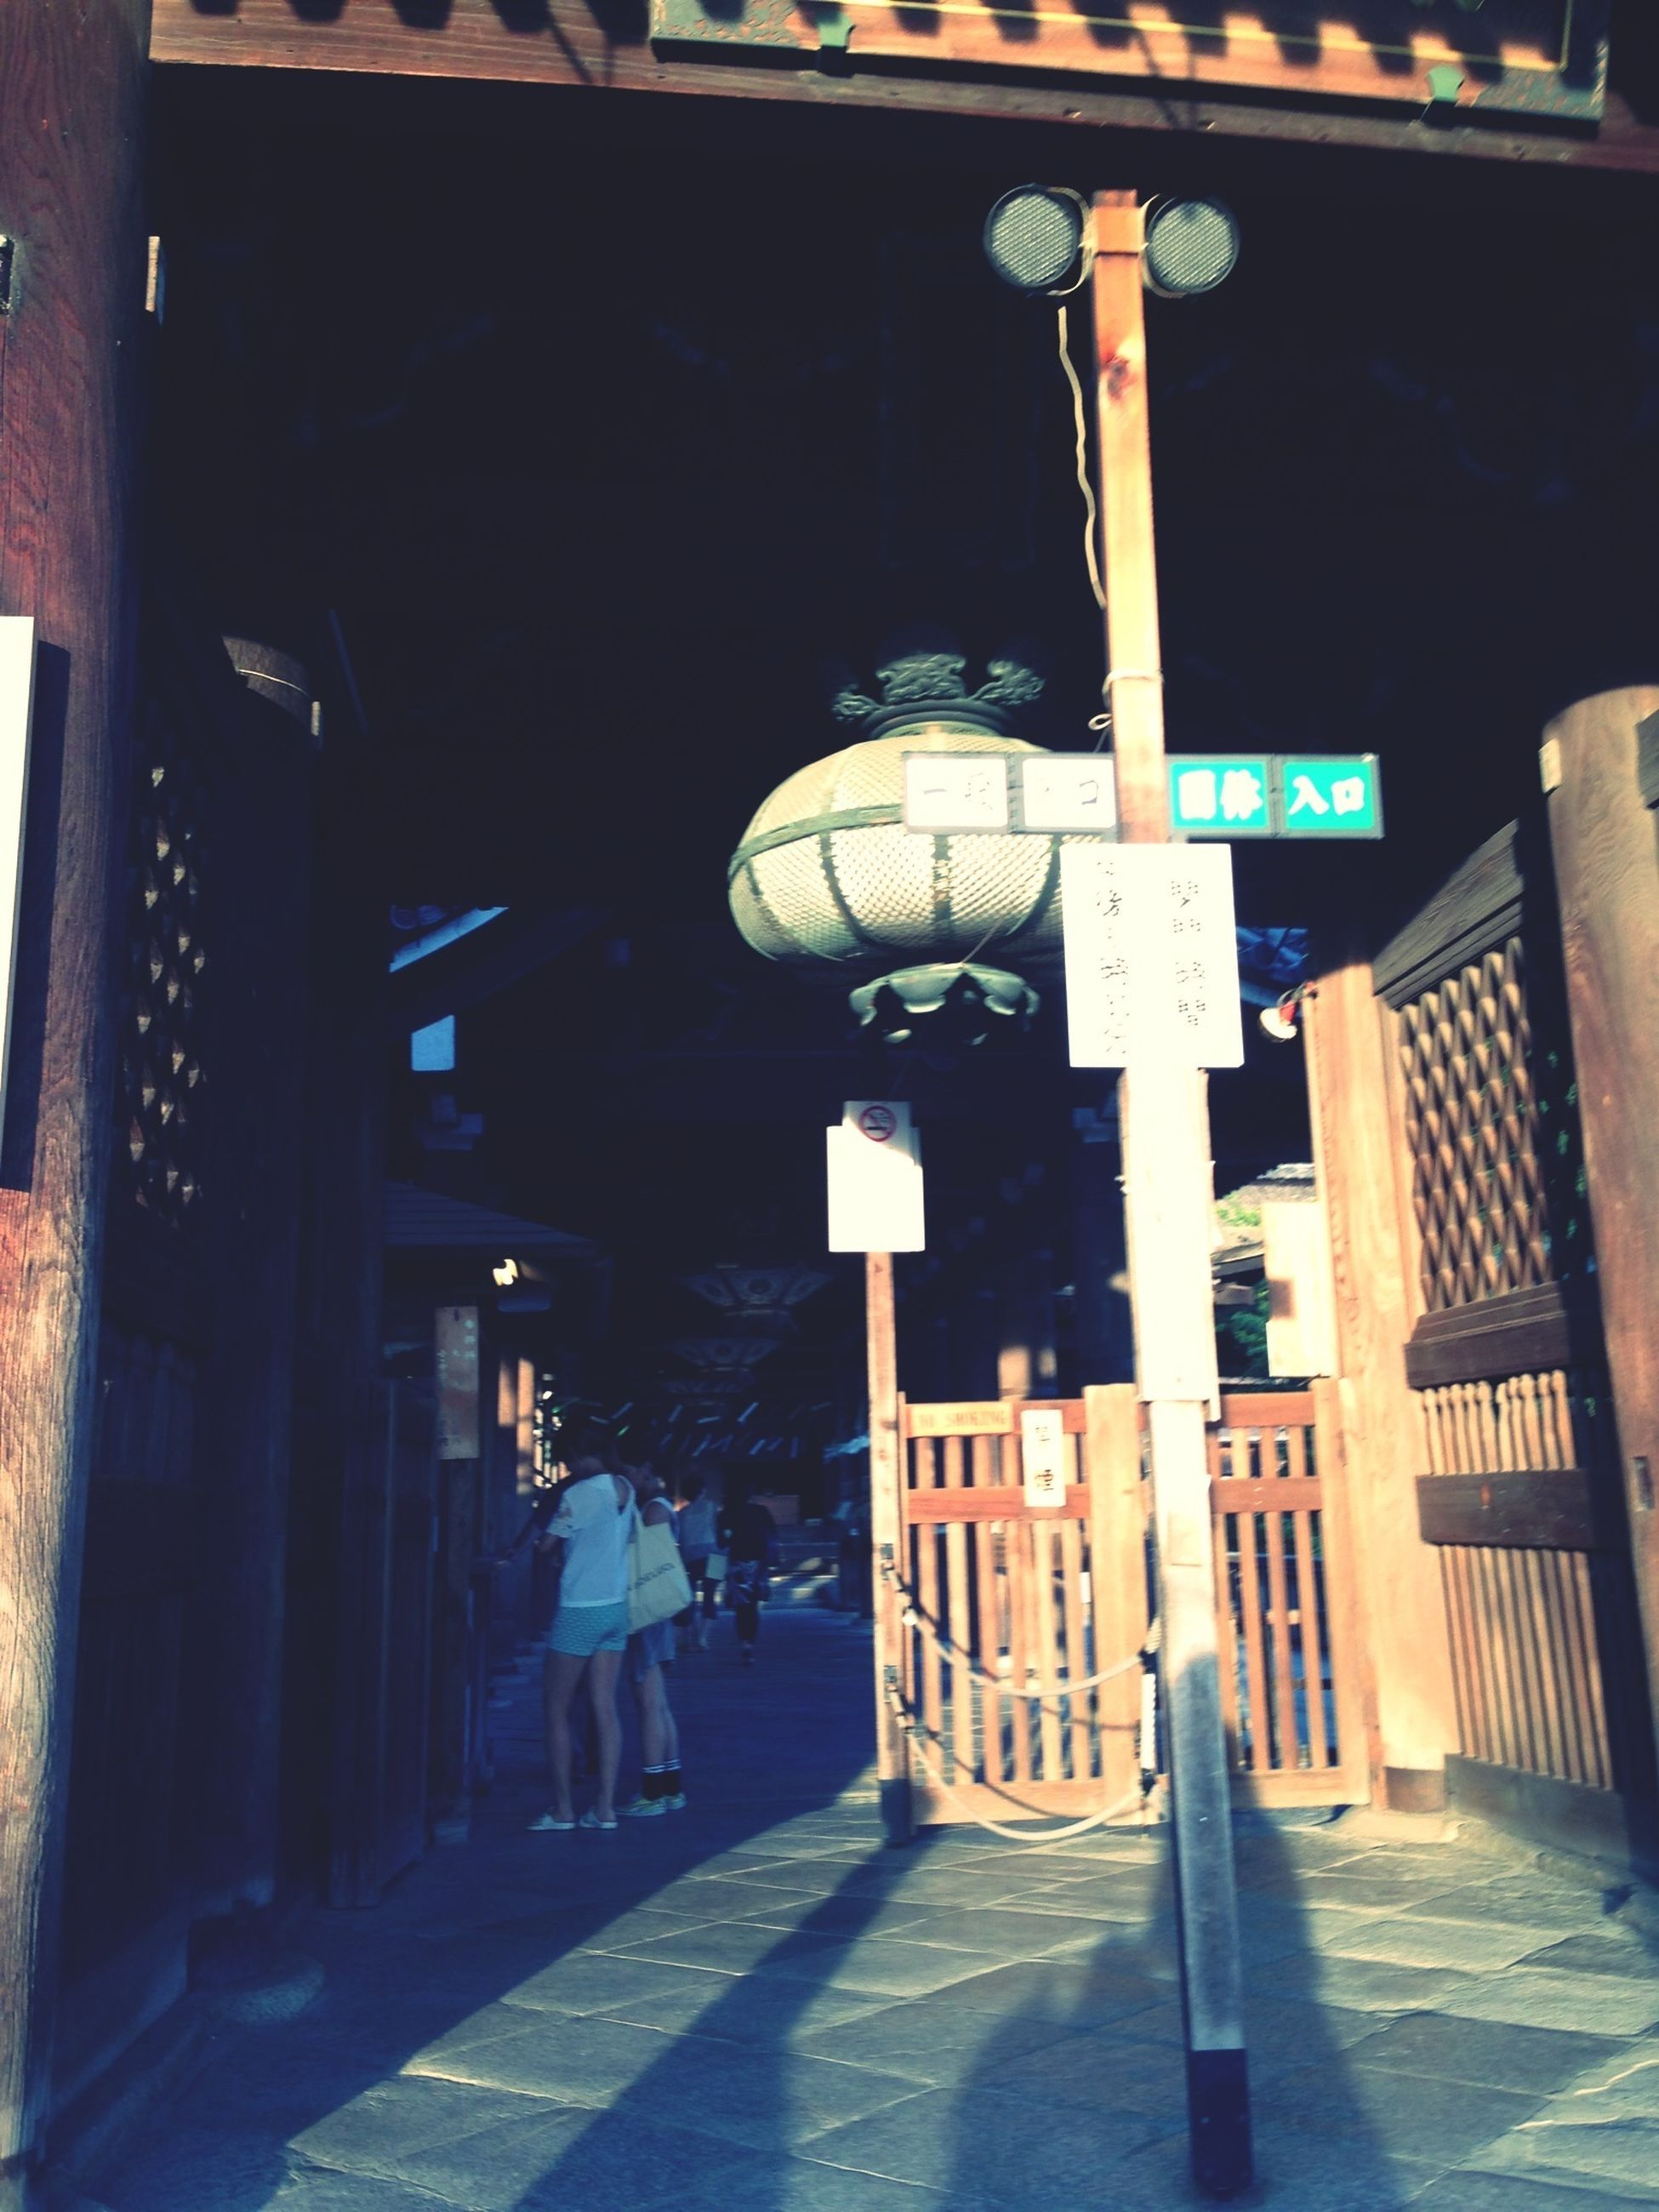 architecture, built structure, building exterior, text, lighting equipment, communication, illuminated, street light, city, western script, low angle view, street, information sign, sign, building, night, guidance, architectural column, outdoors, the way forward